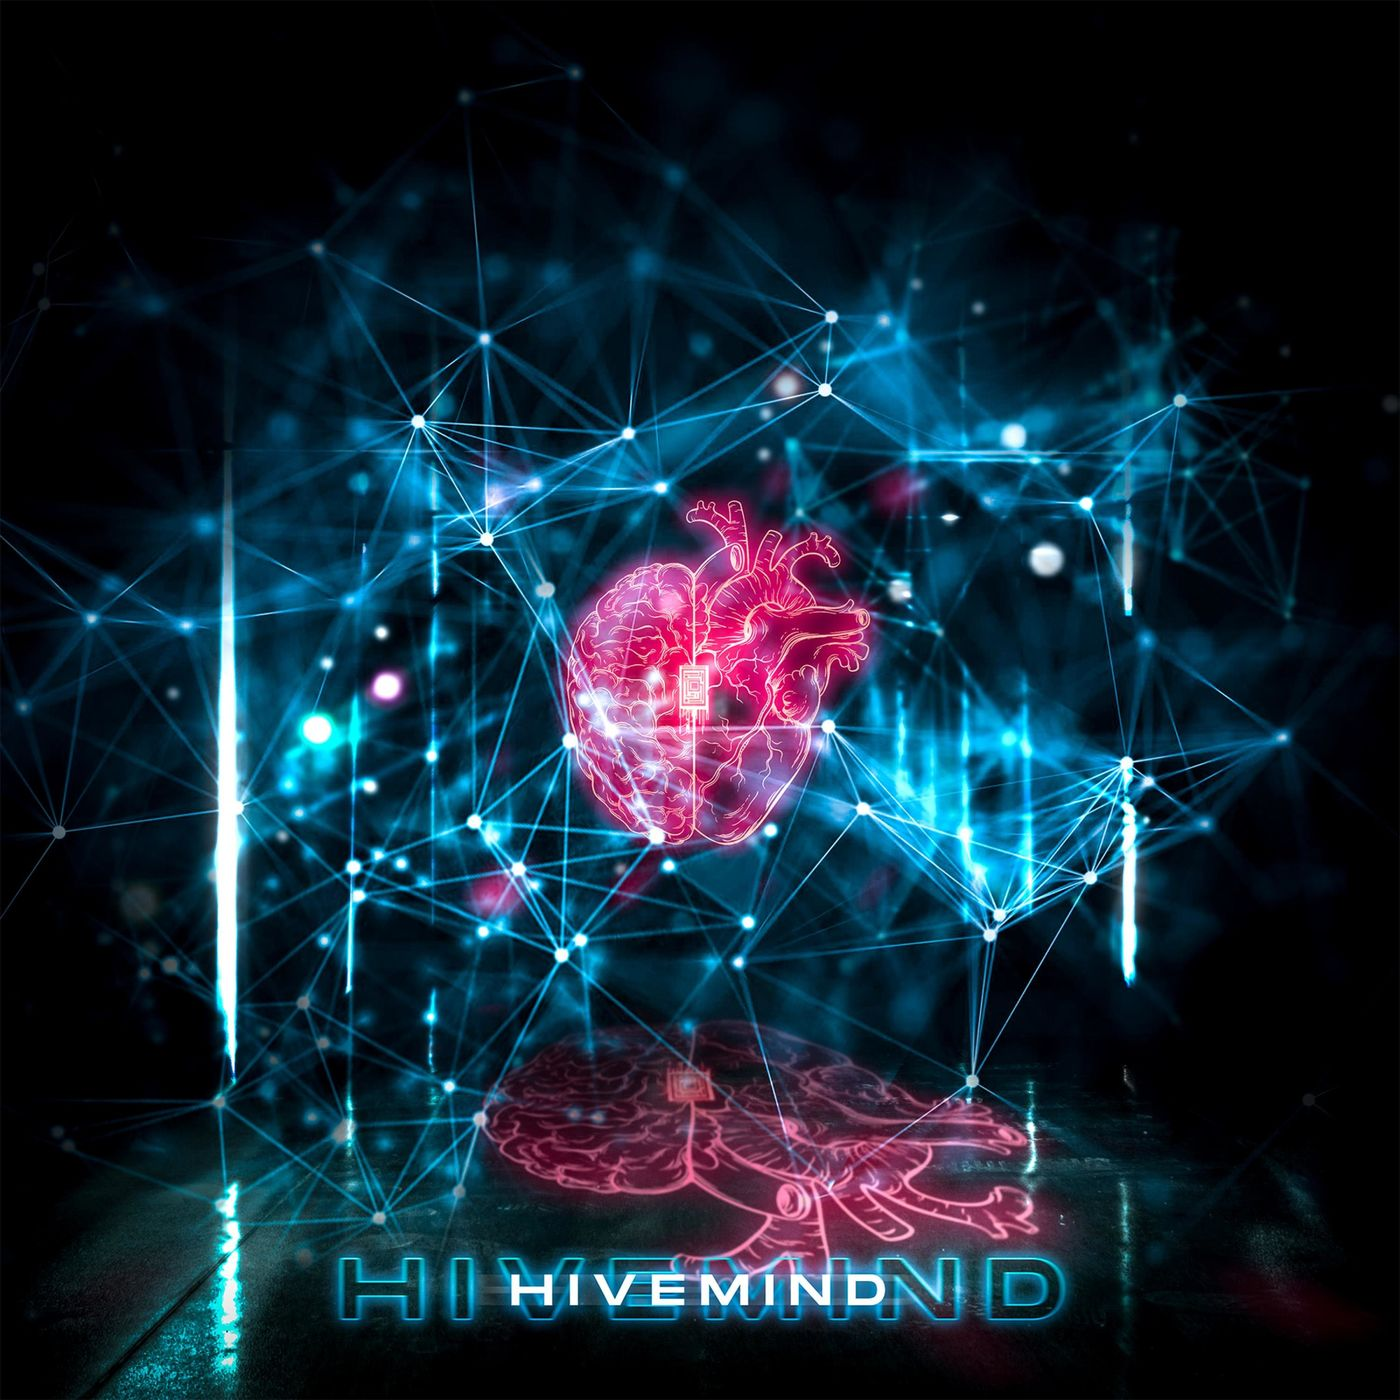 Coldharbour - Hivemind [single] (2020)